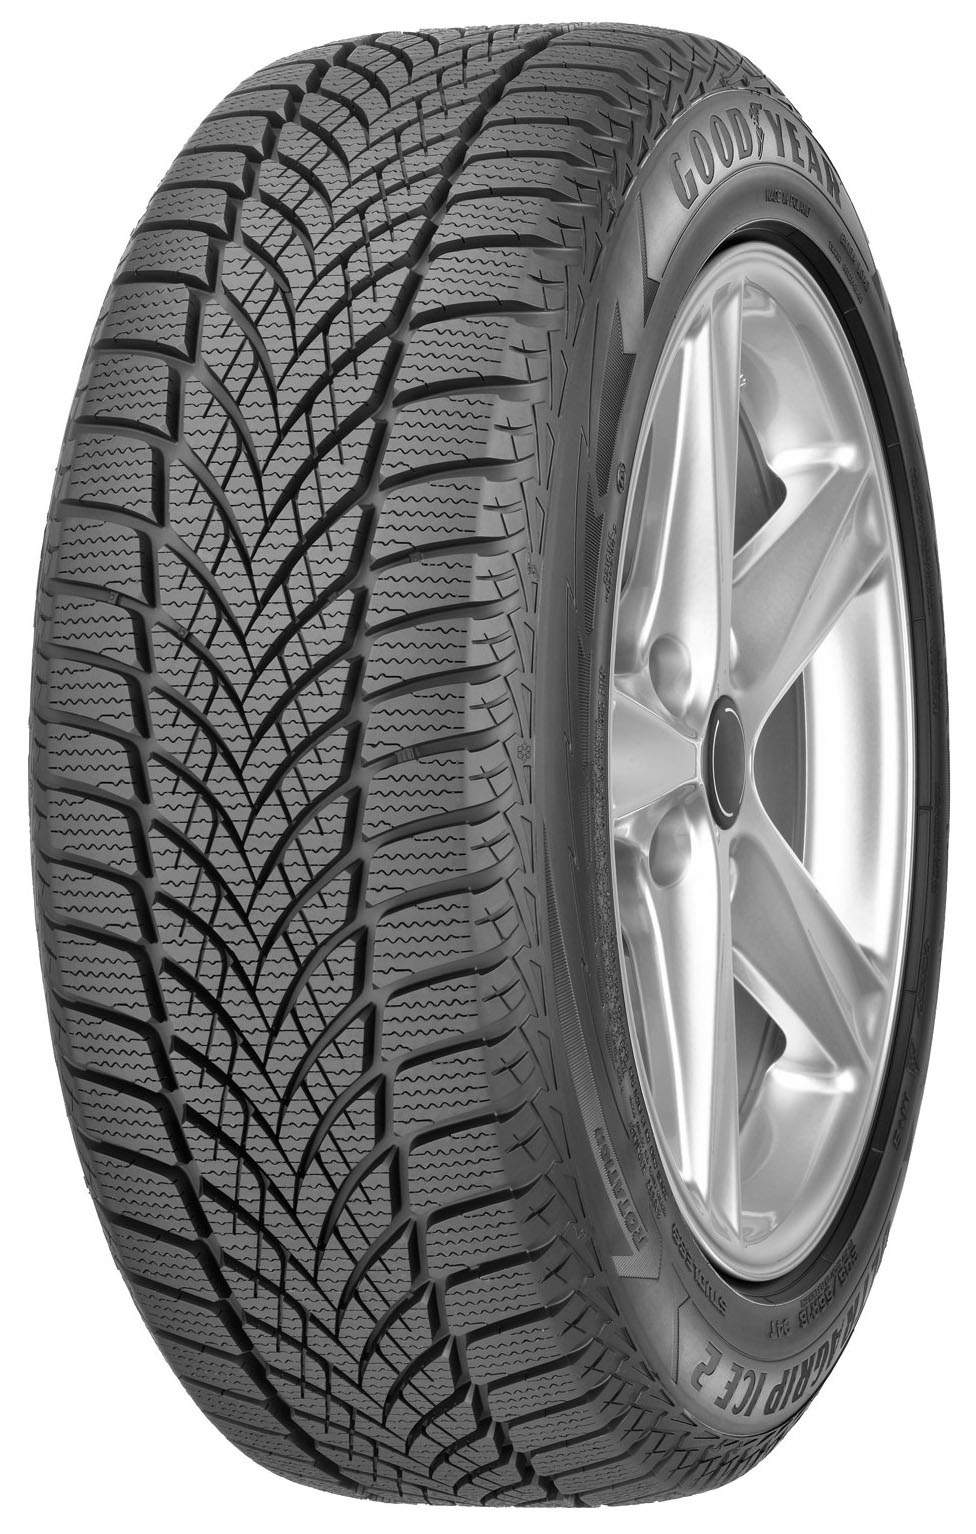 Автошина R16 195/55 Goodyear UltraGrip Ice 2 87T (зима)